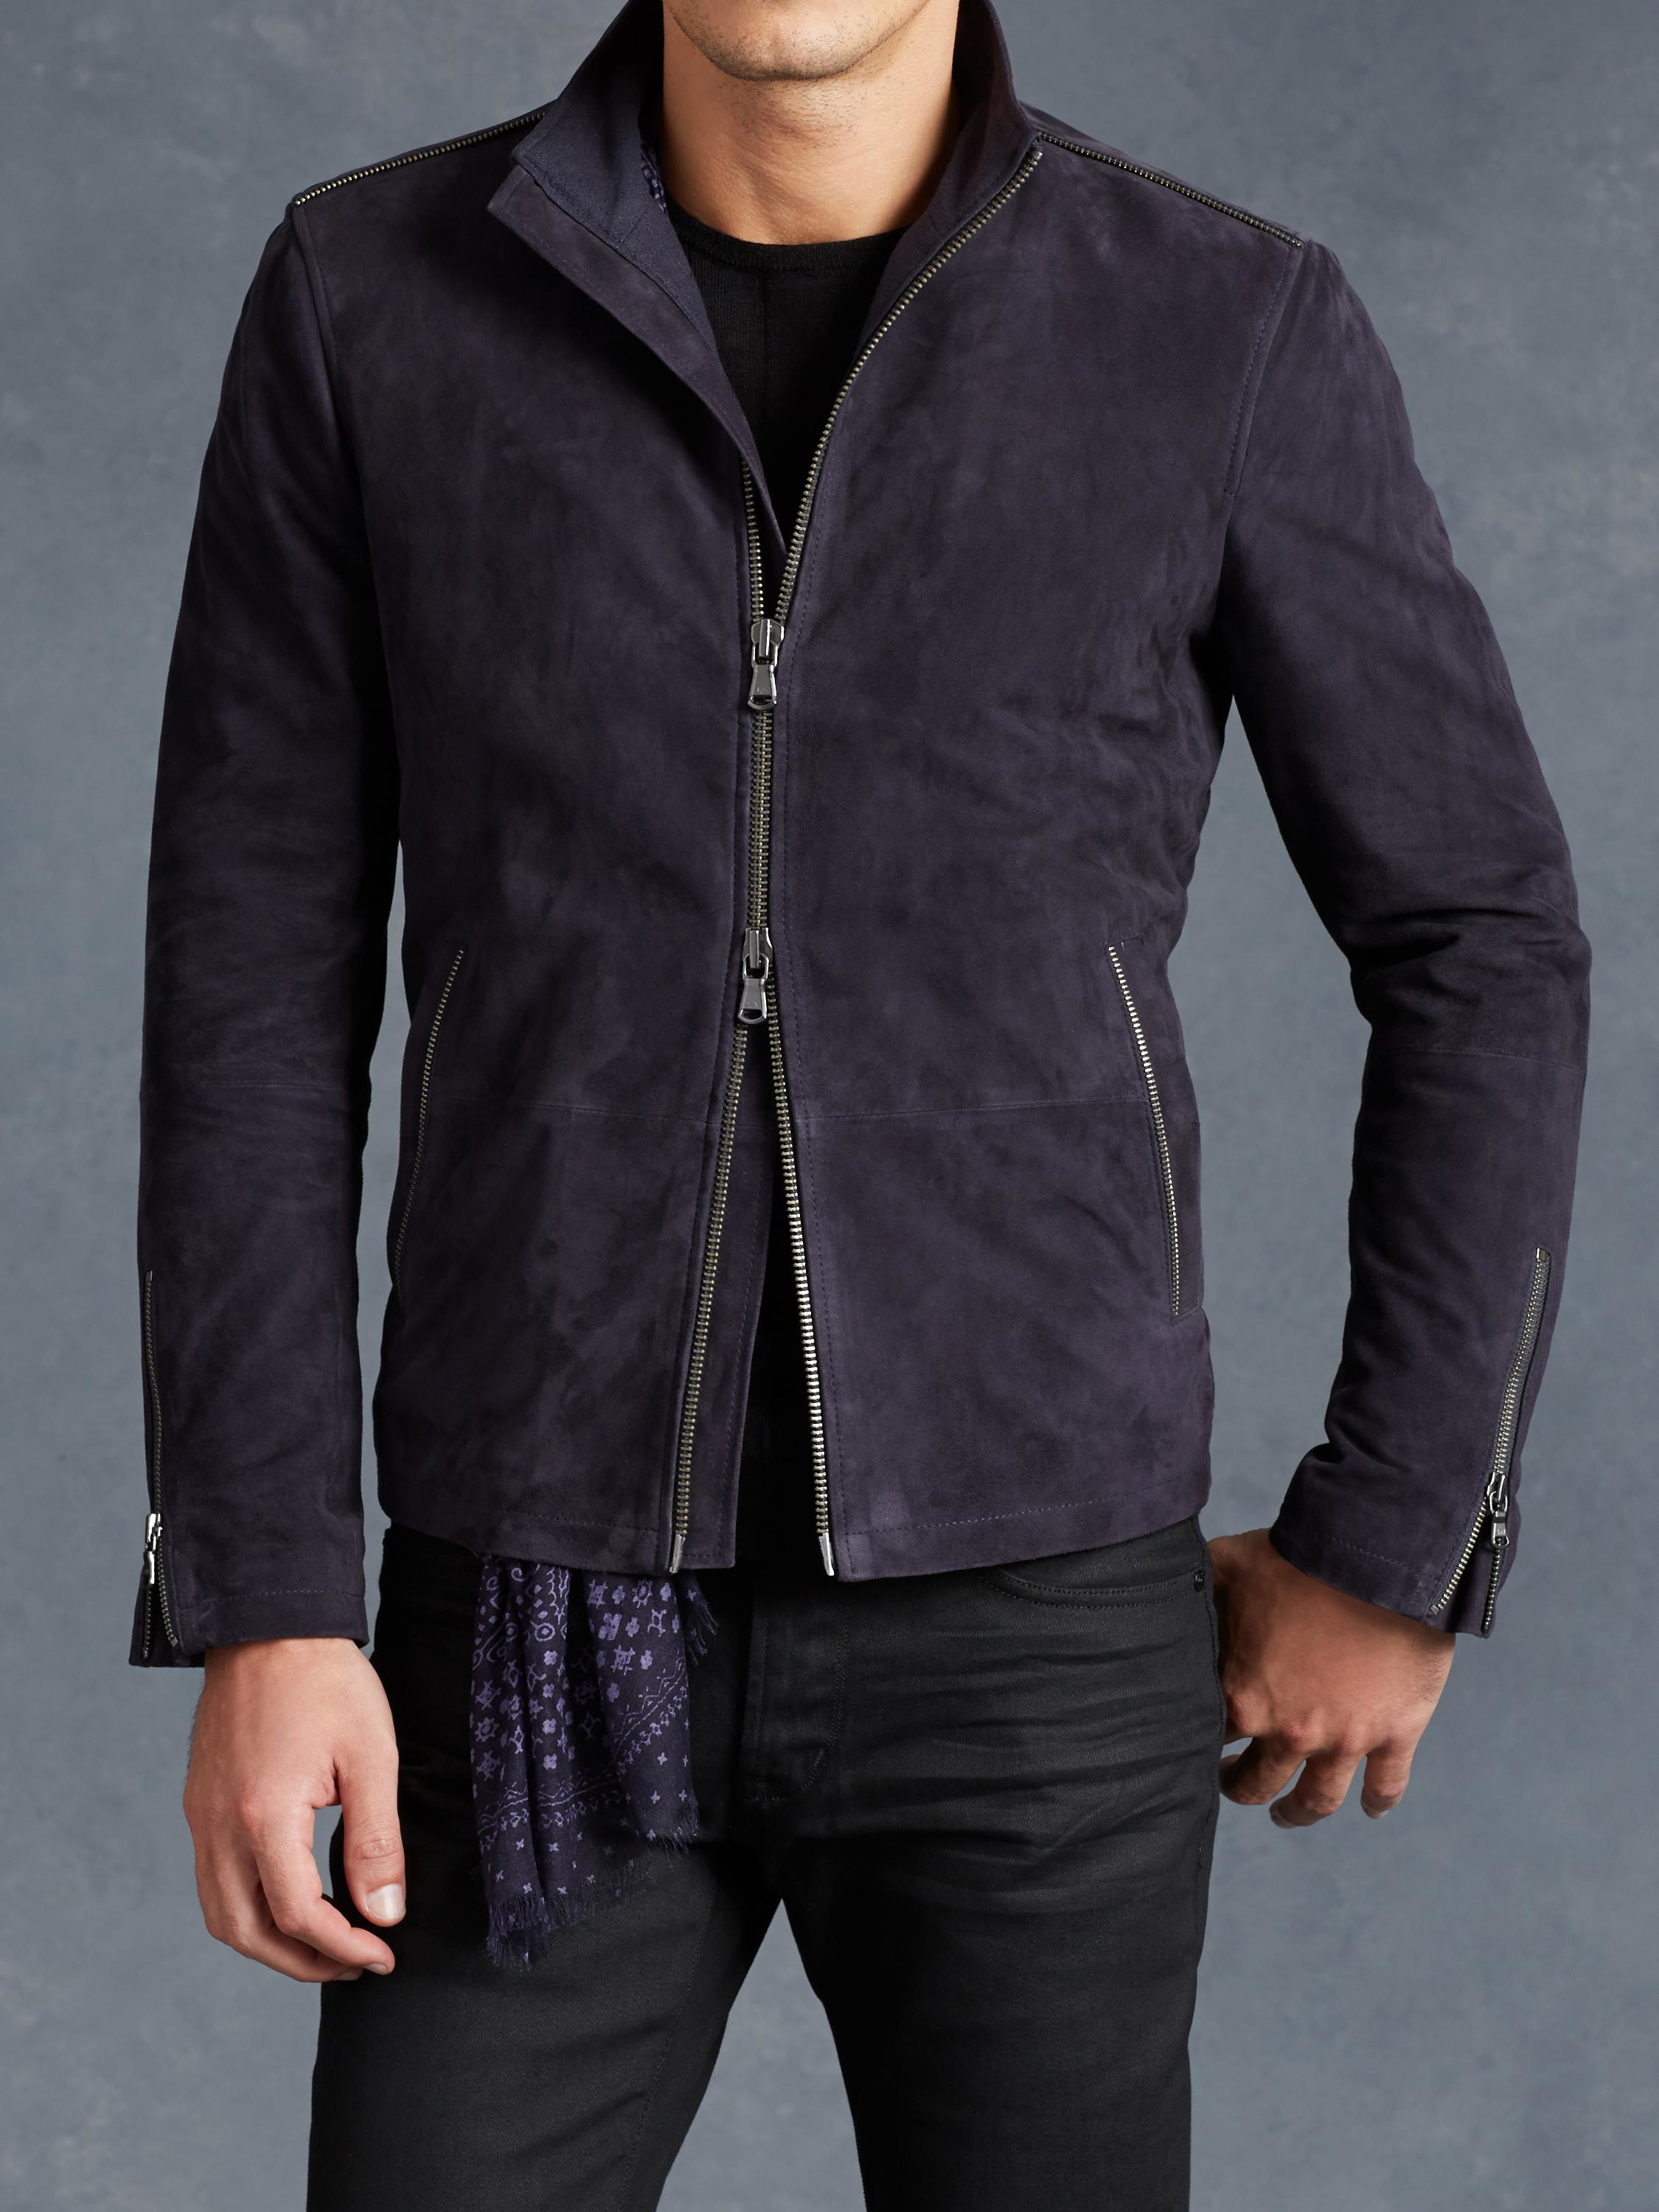 biker jacket - Blue John Varvatos Low Cost Sale Online Sale Reliable Purchase For Sale Really Cheap Wholesale YVLyKn0